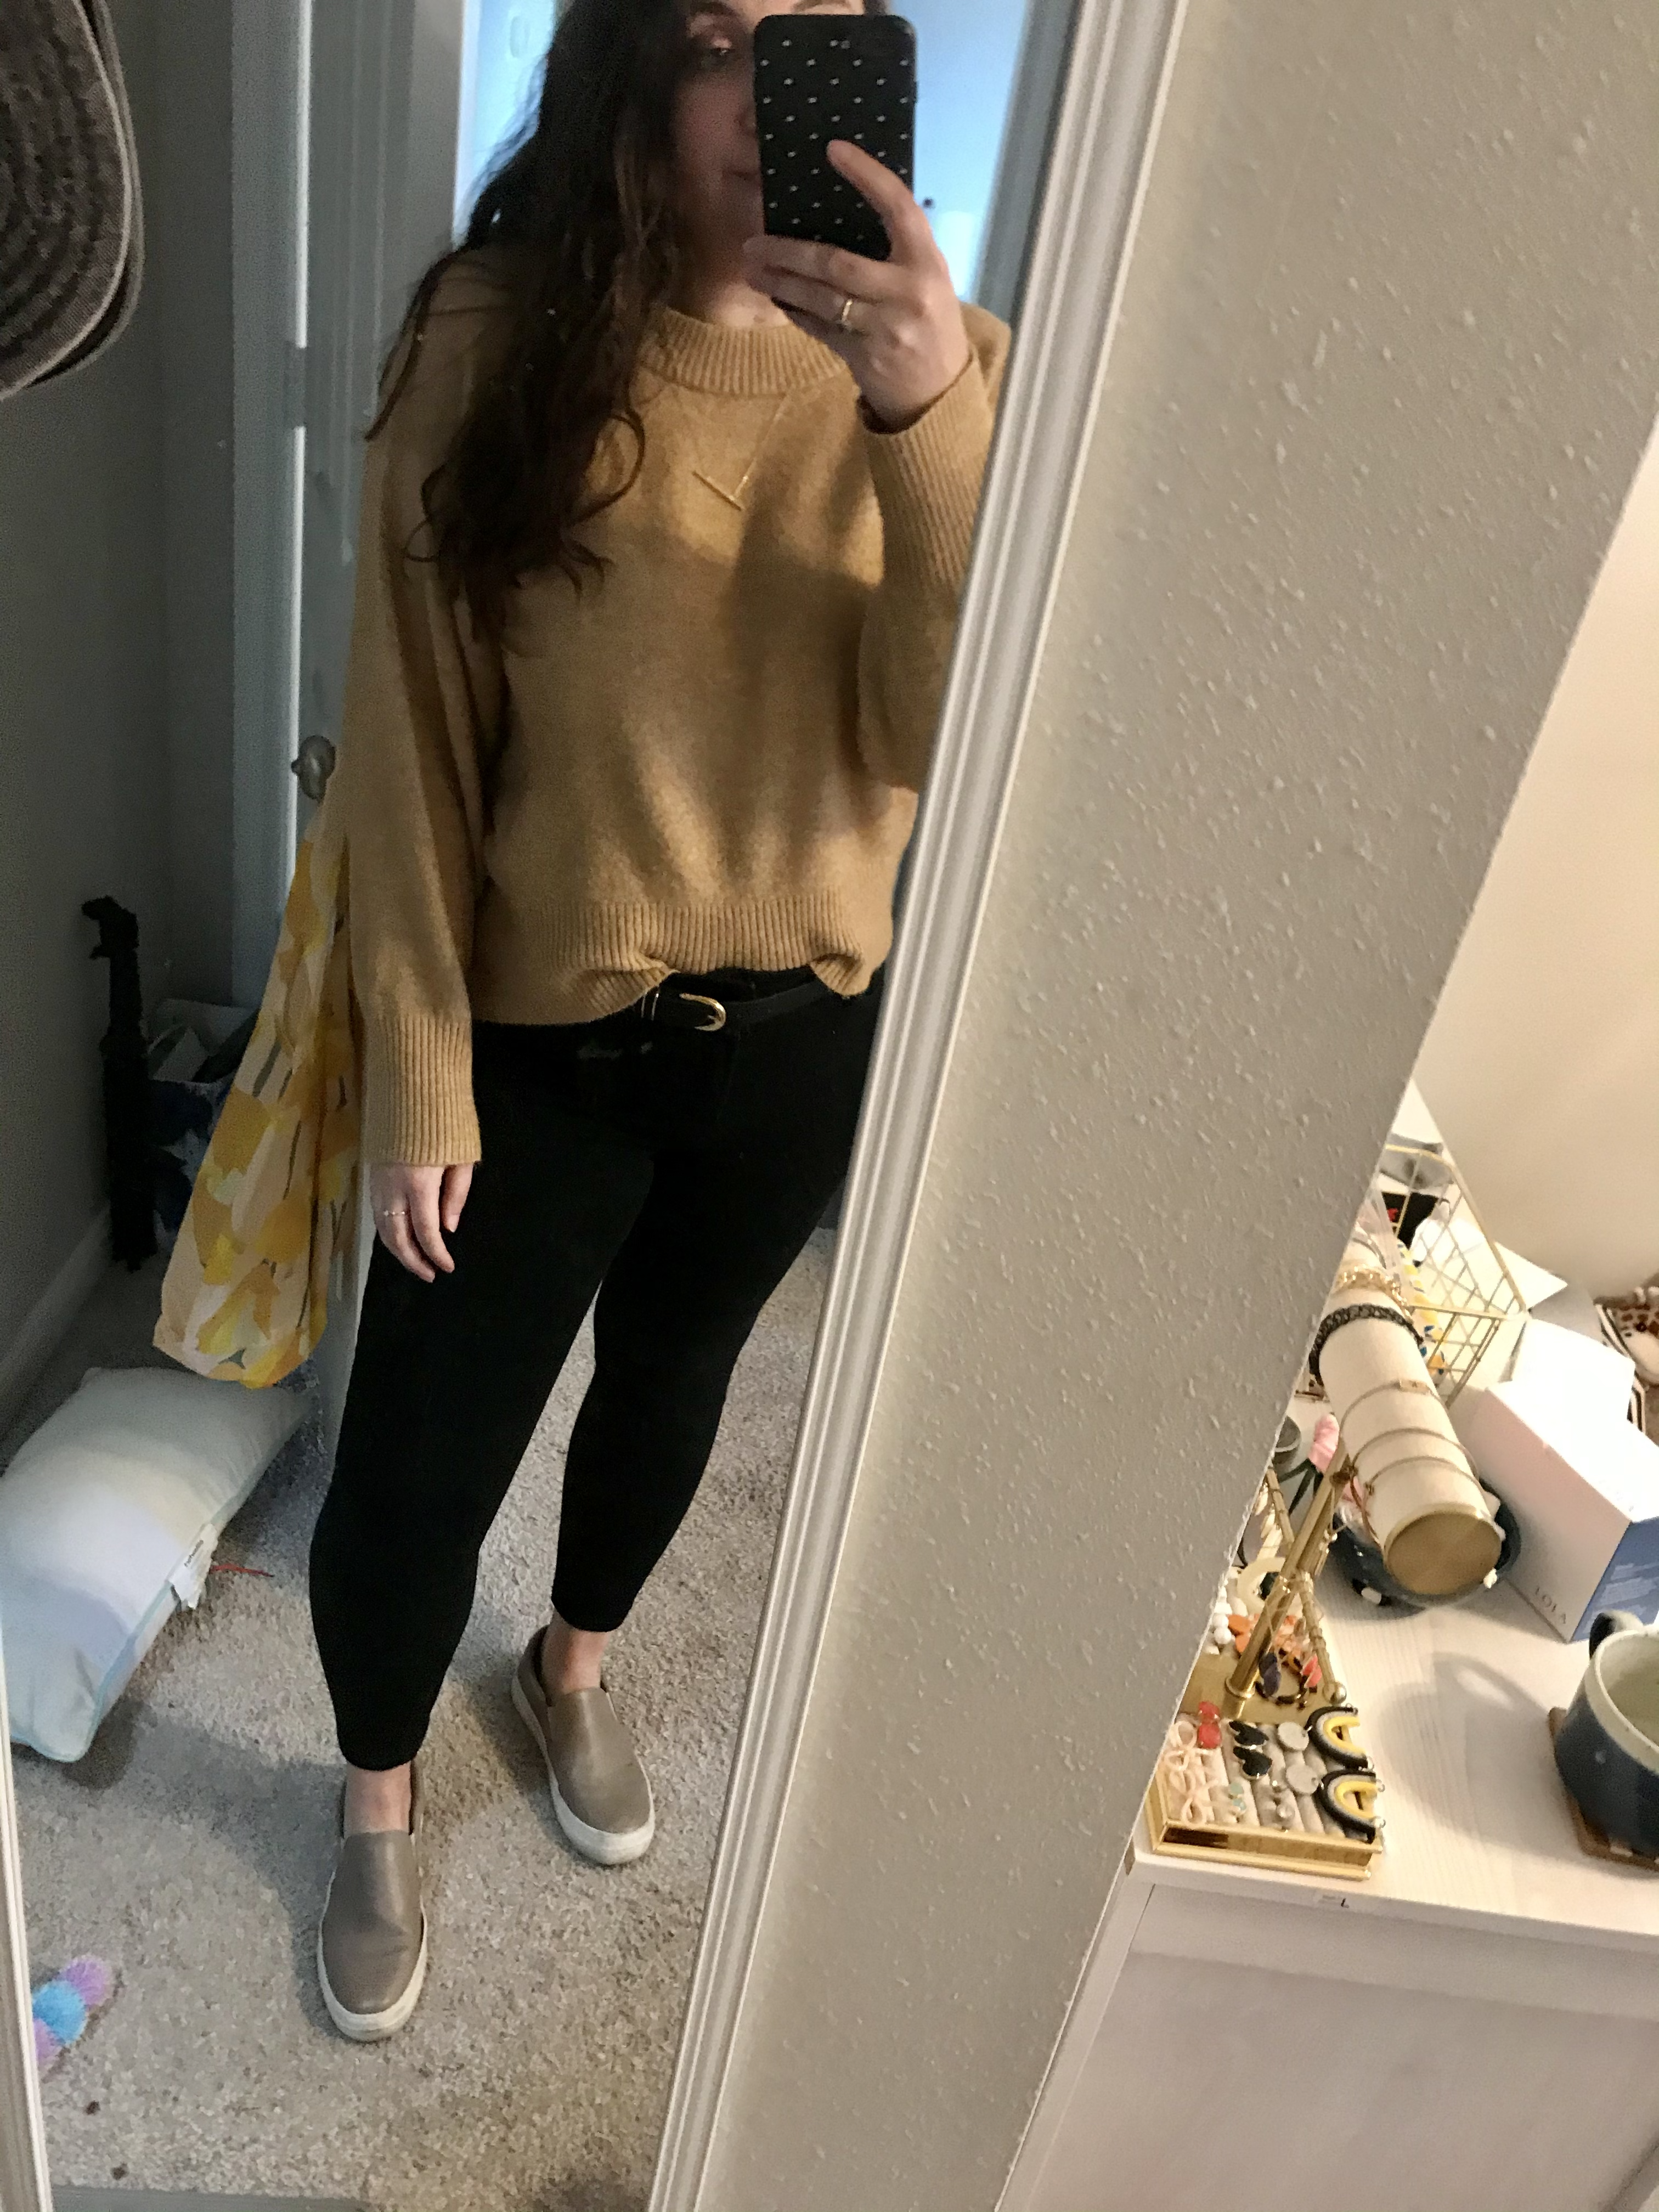 Girl in brown sweater and black jeans with grey slide on sneakers